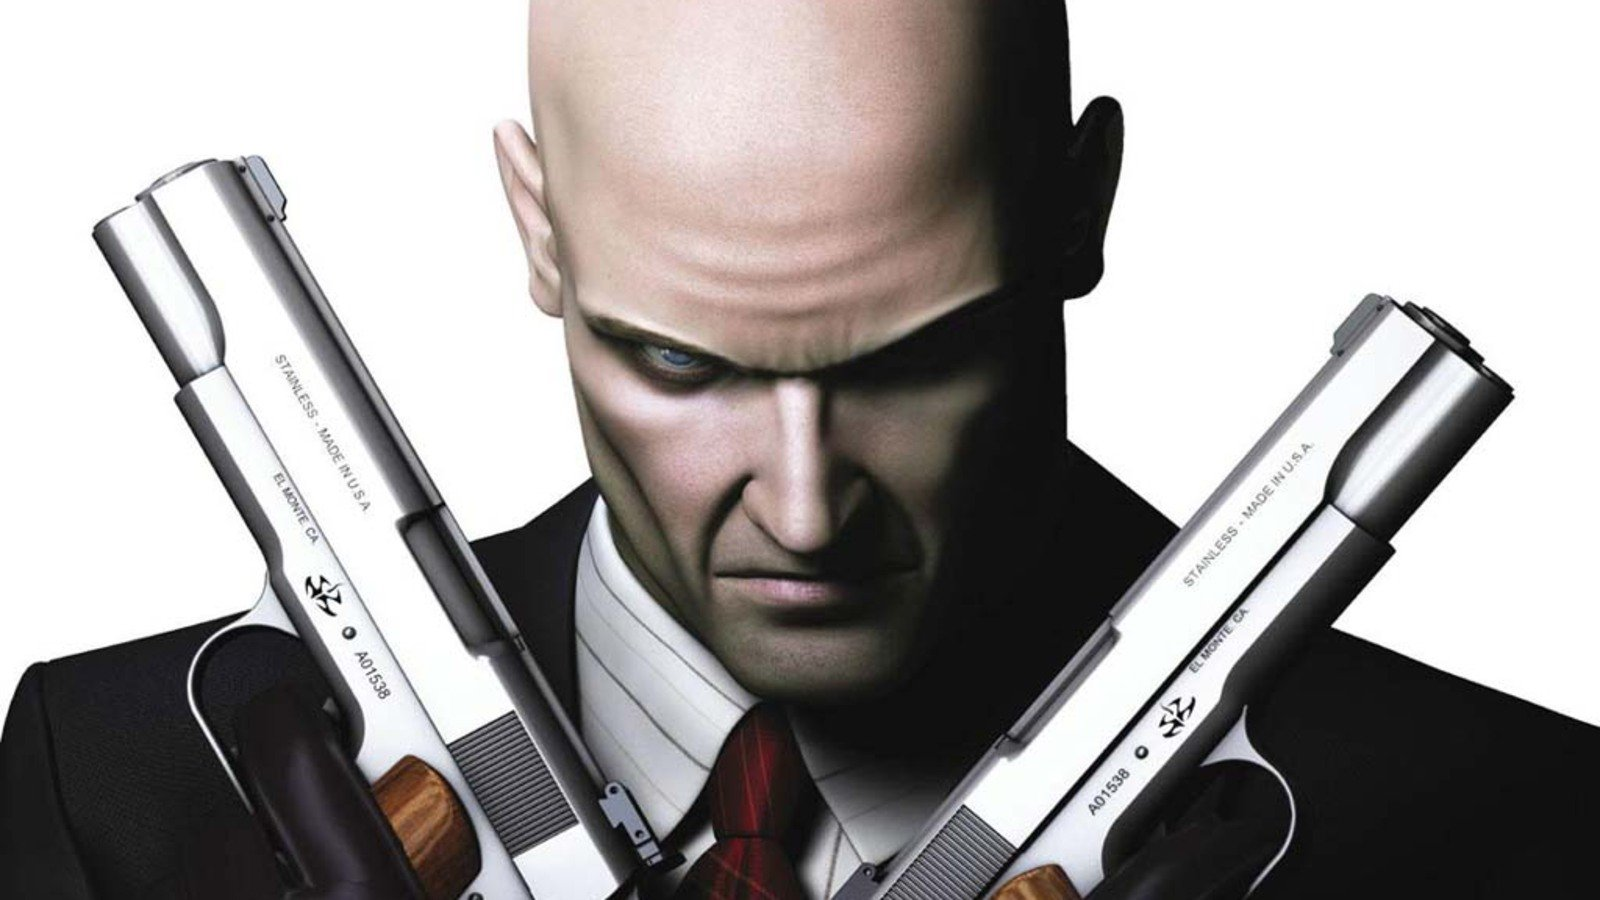 agent 47 hd wallpapers - photo #35